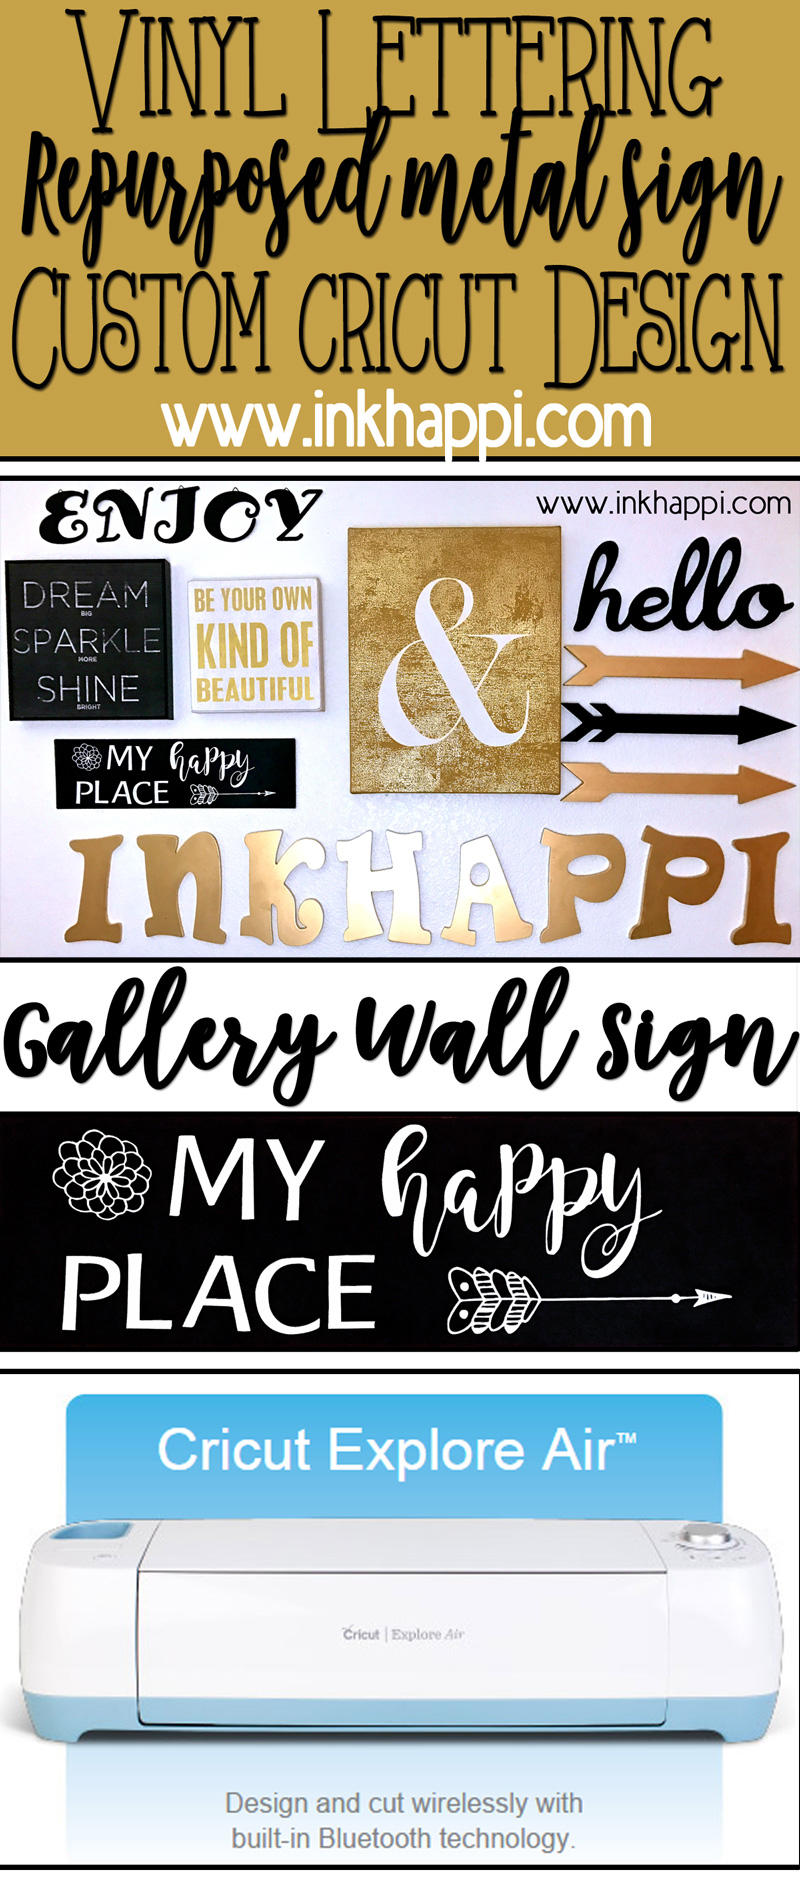 make a repurposed my happy place metal sign with this vinyl lettering cricut design